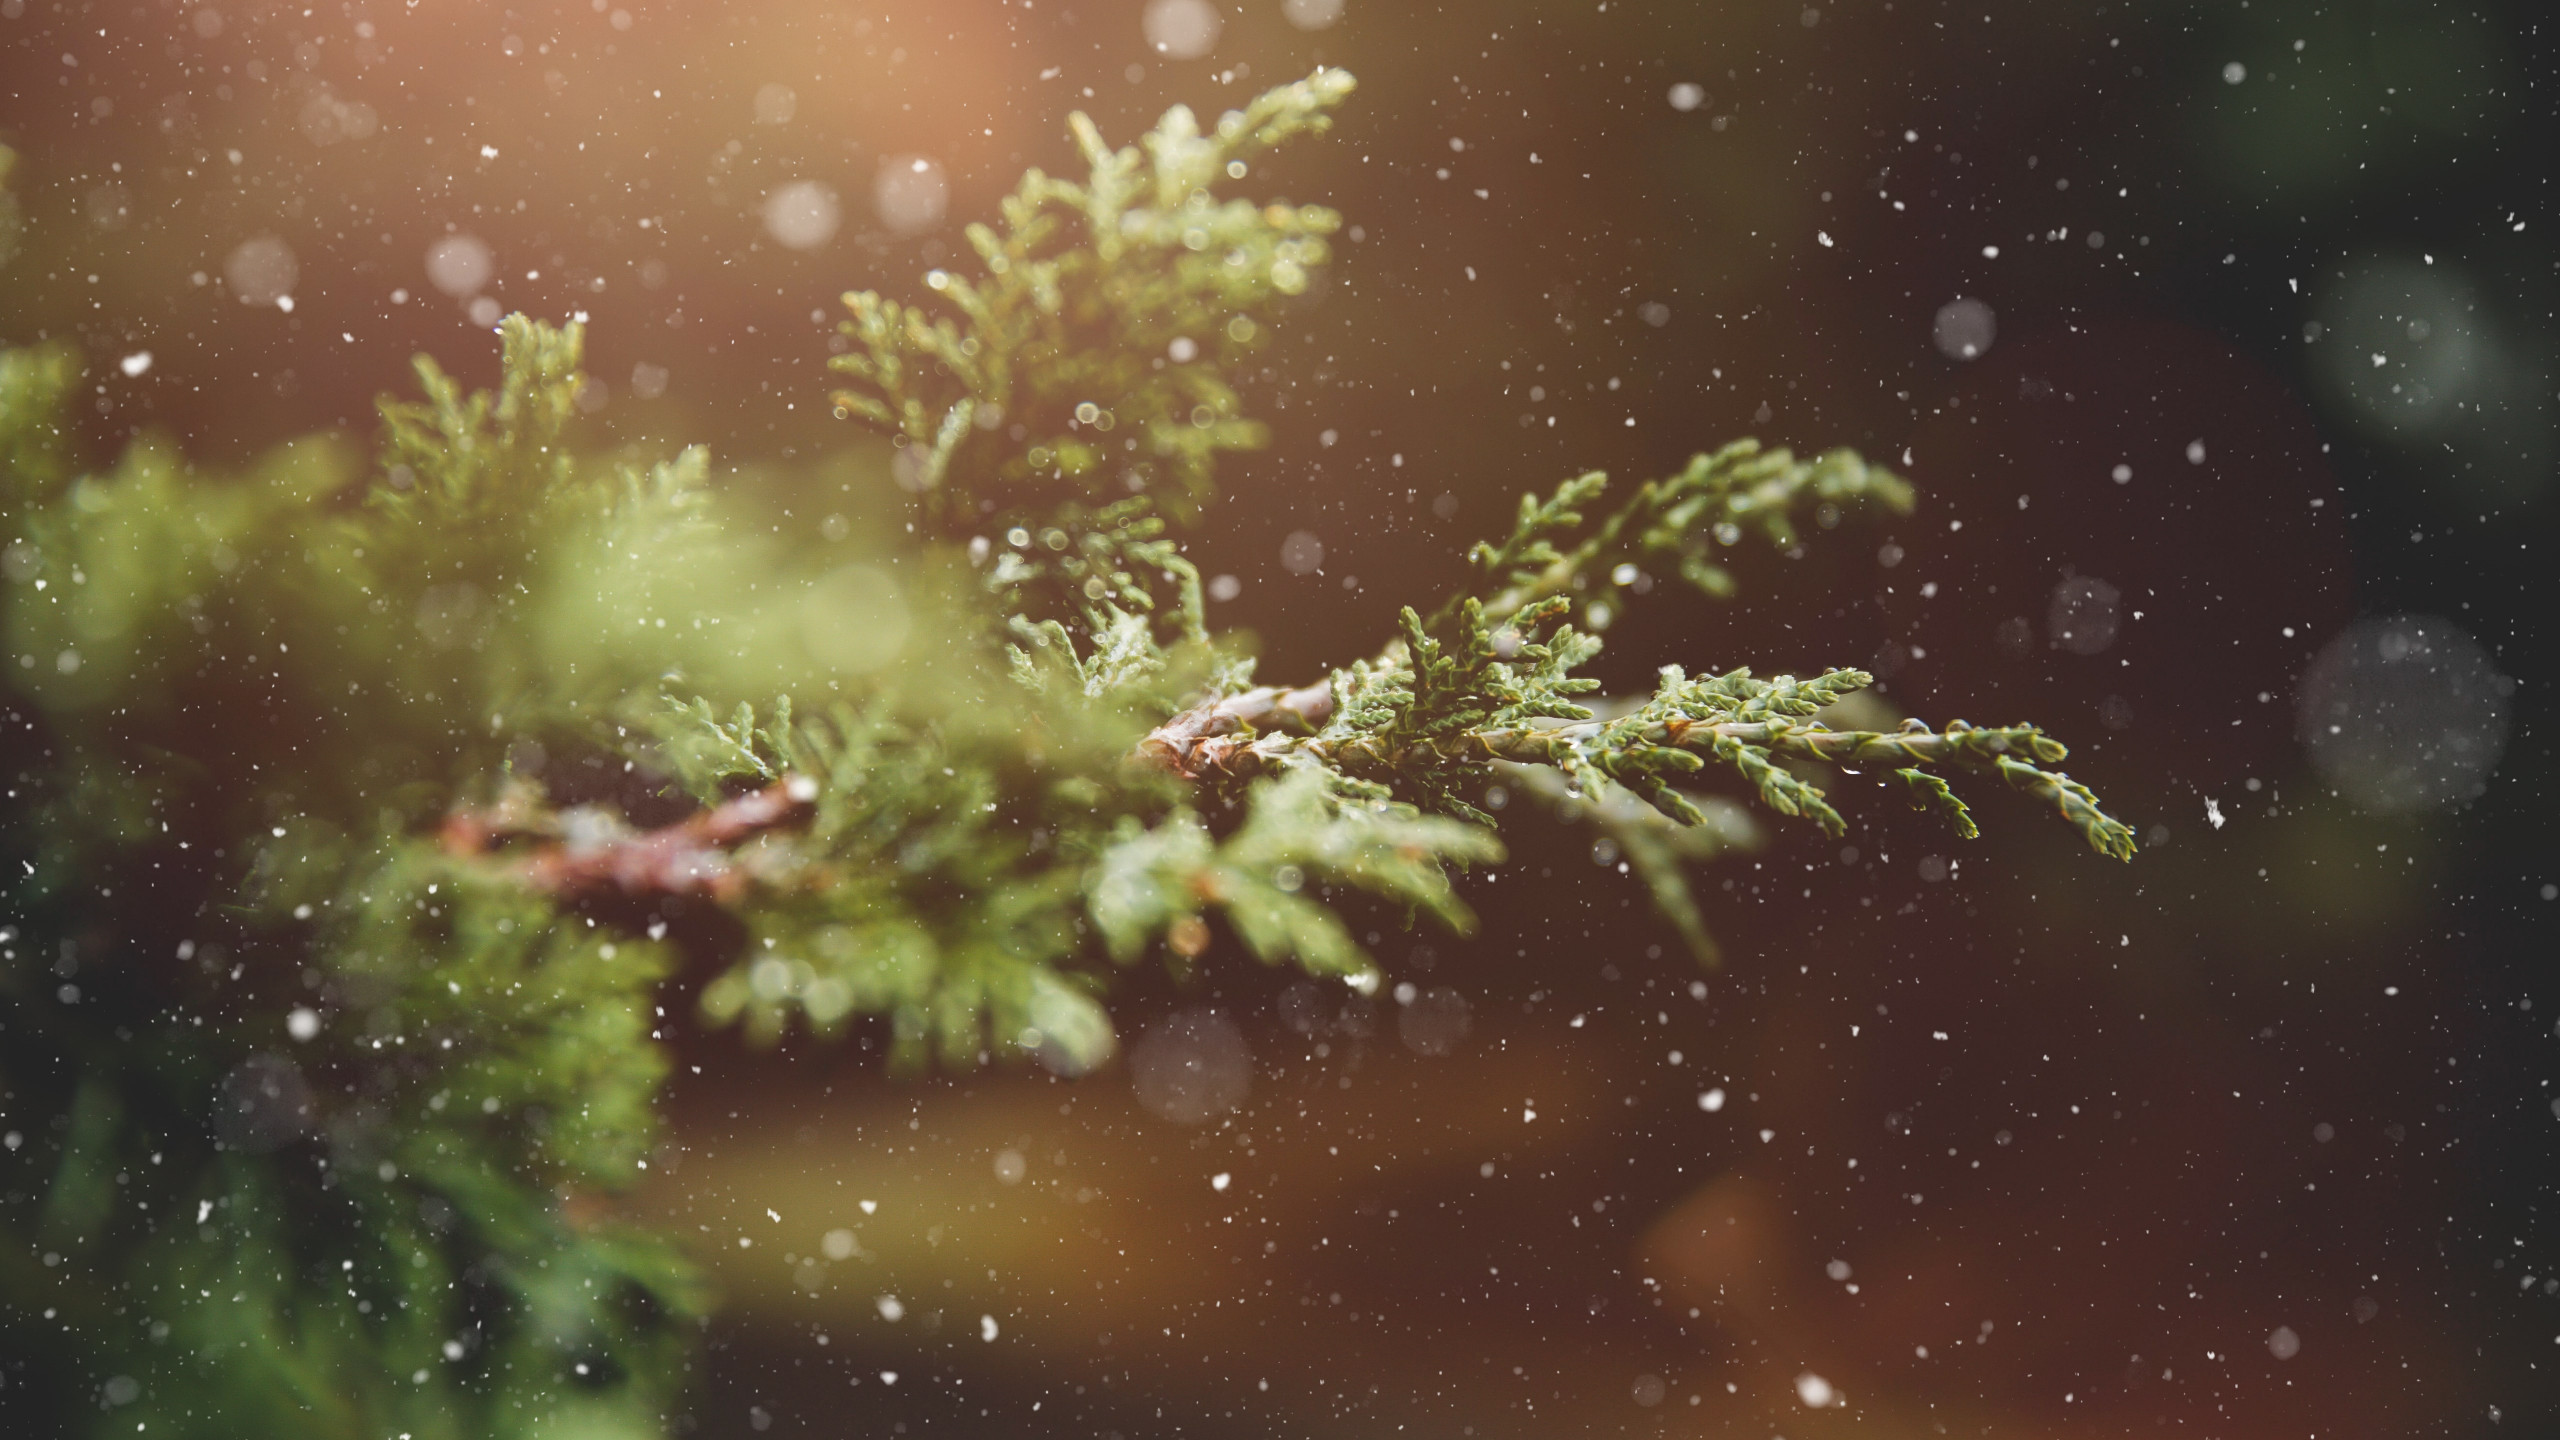 Snowflakes over the pine branch wallpaper 2560x1440